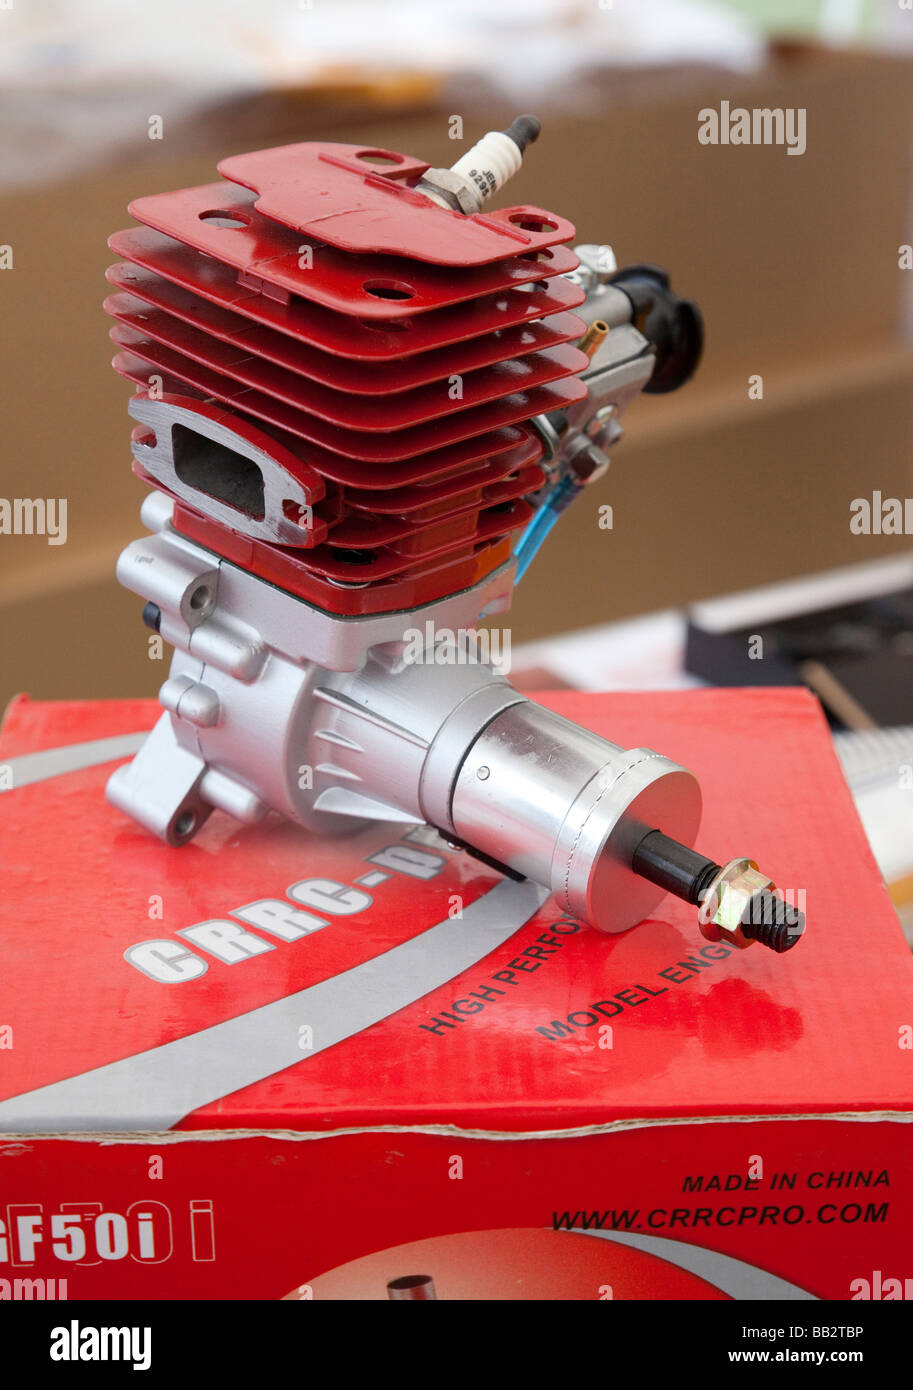 two stroke petrol / gasoline engine - Stock Image